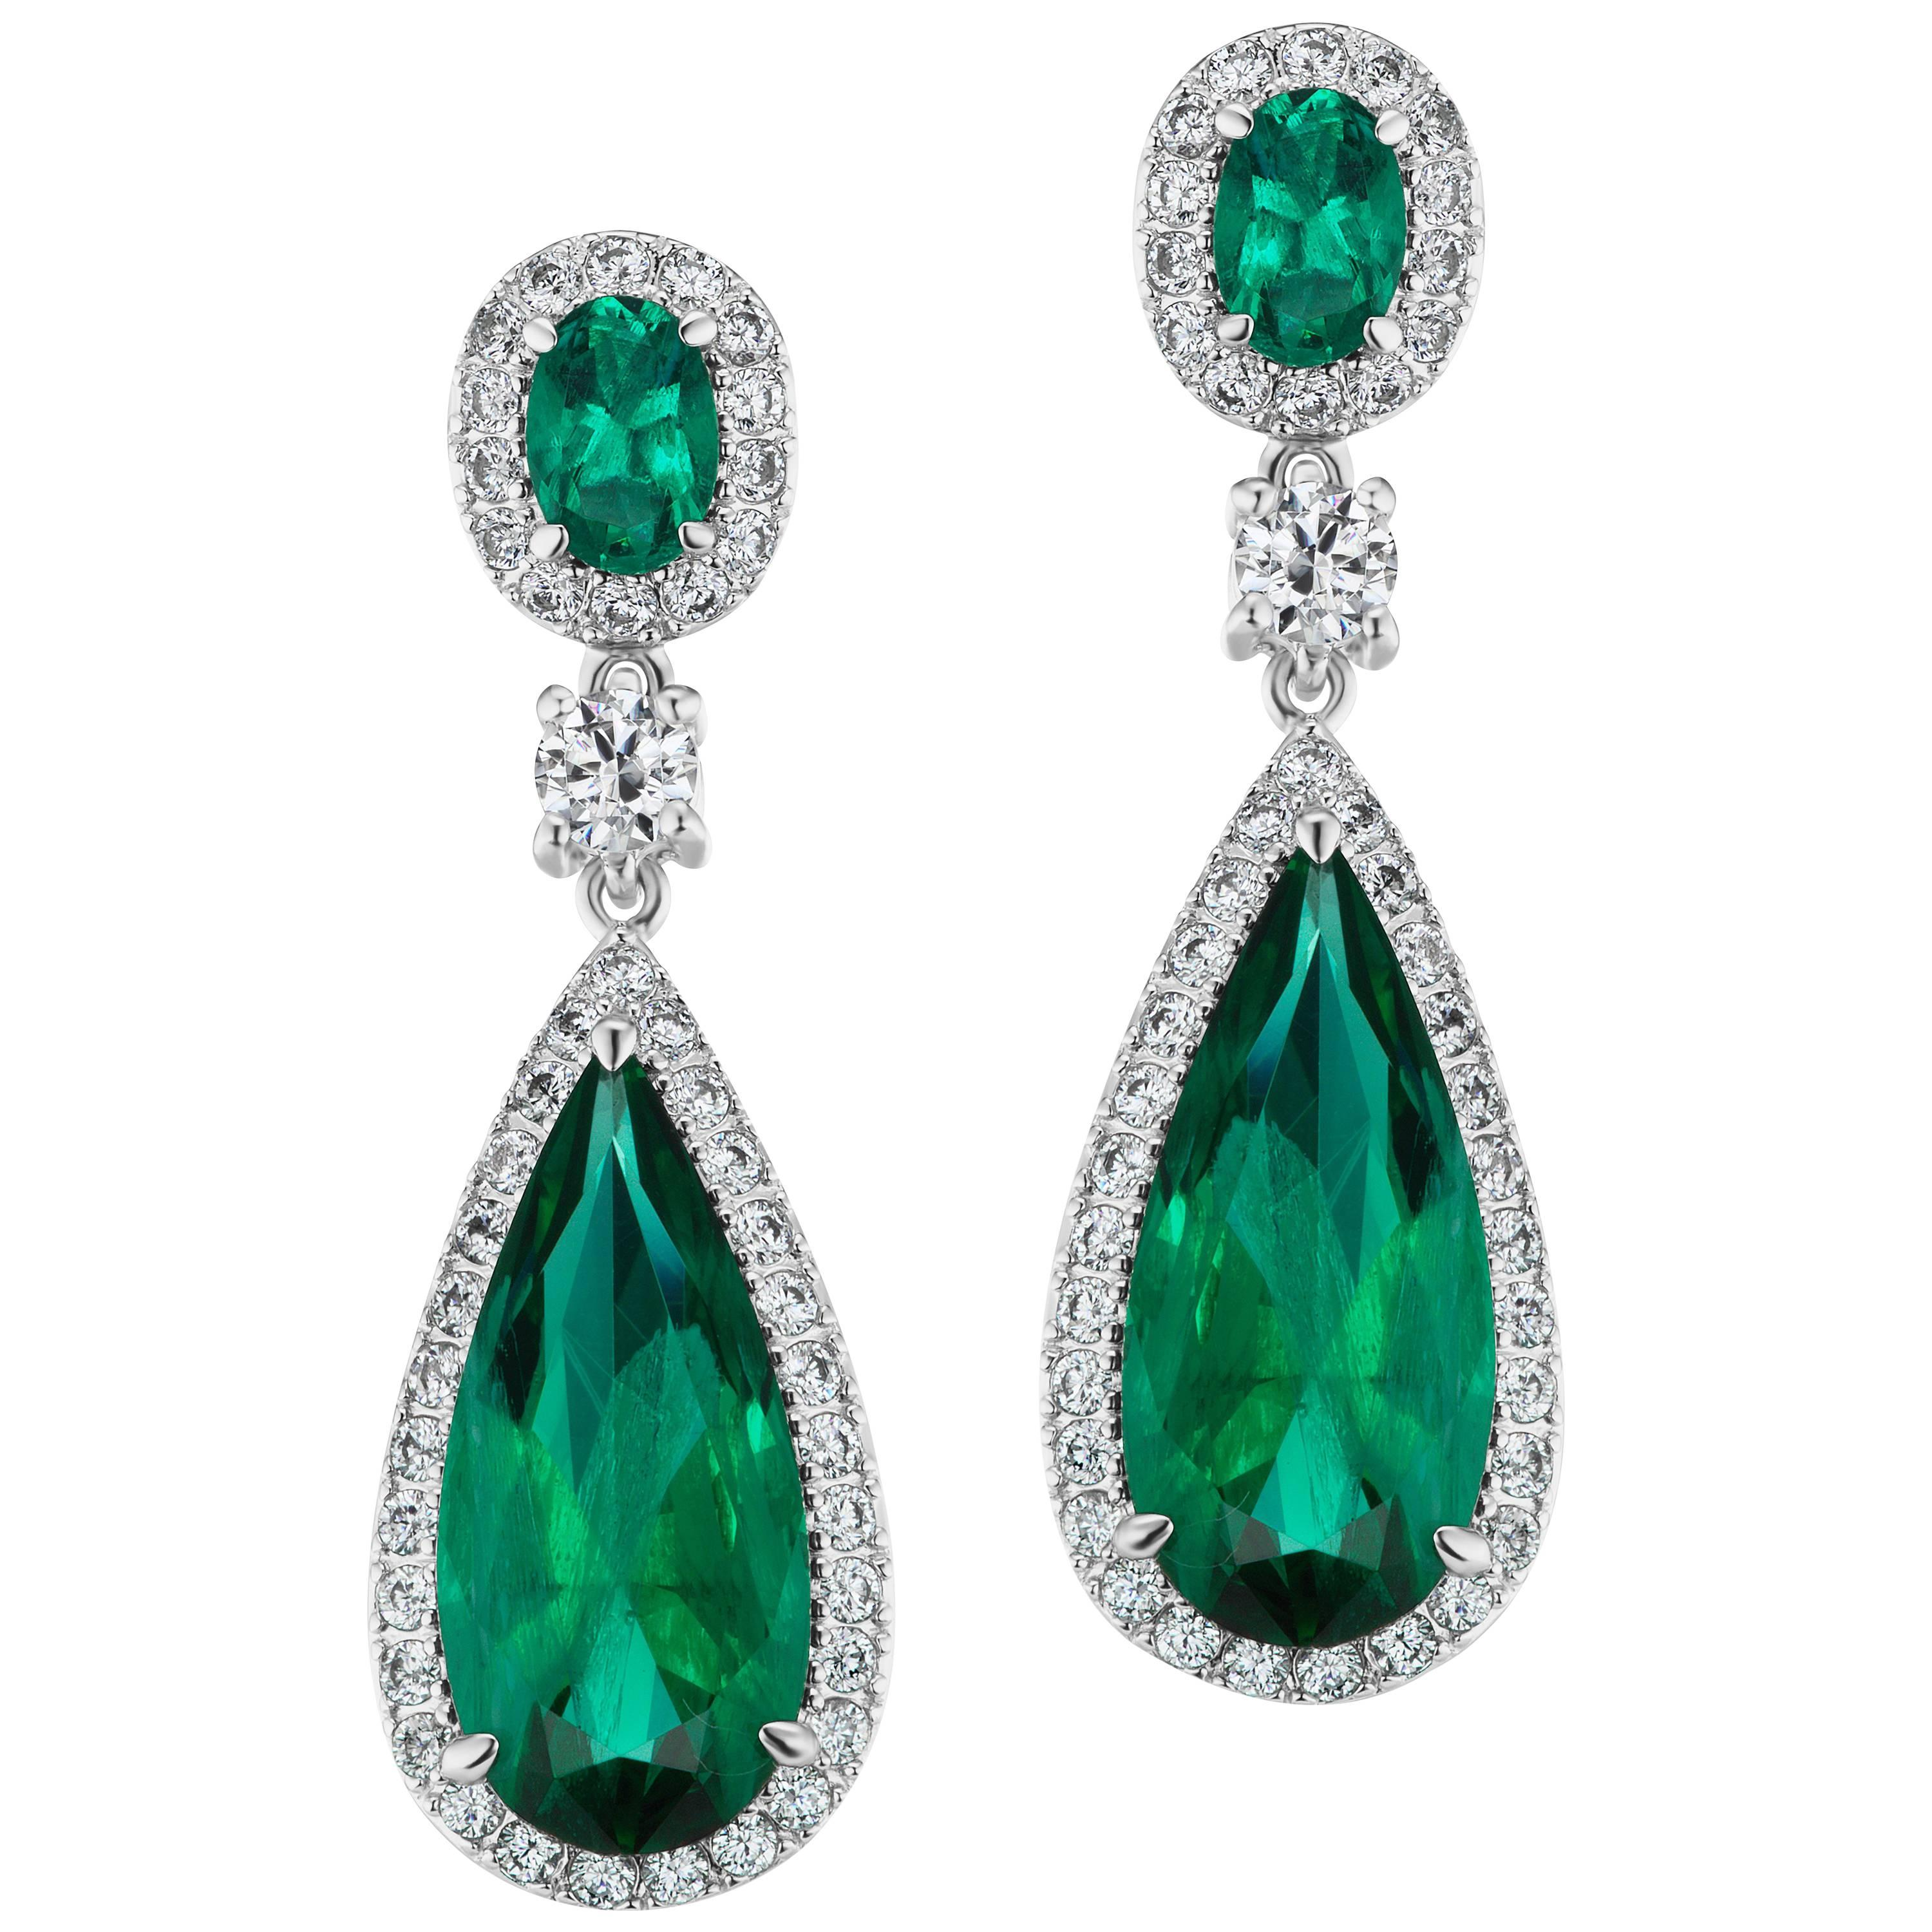 Magnificent Costume Jewelry Emerald Diamond Earrings For Sale  sc 1 st  1stDibs & Magnificent Costume Jewelry Emerald Diamond Earrings For Sale at 1stdibs